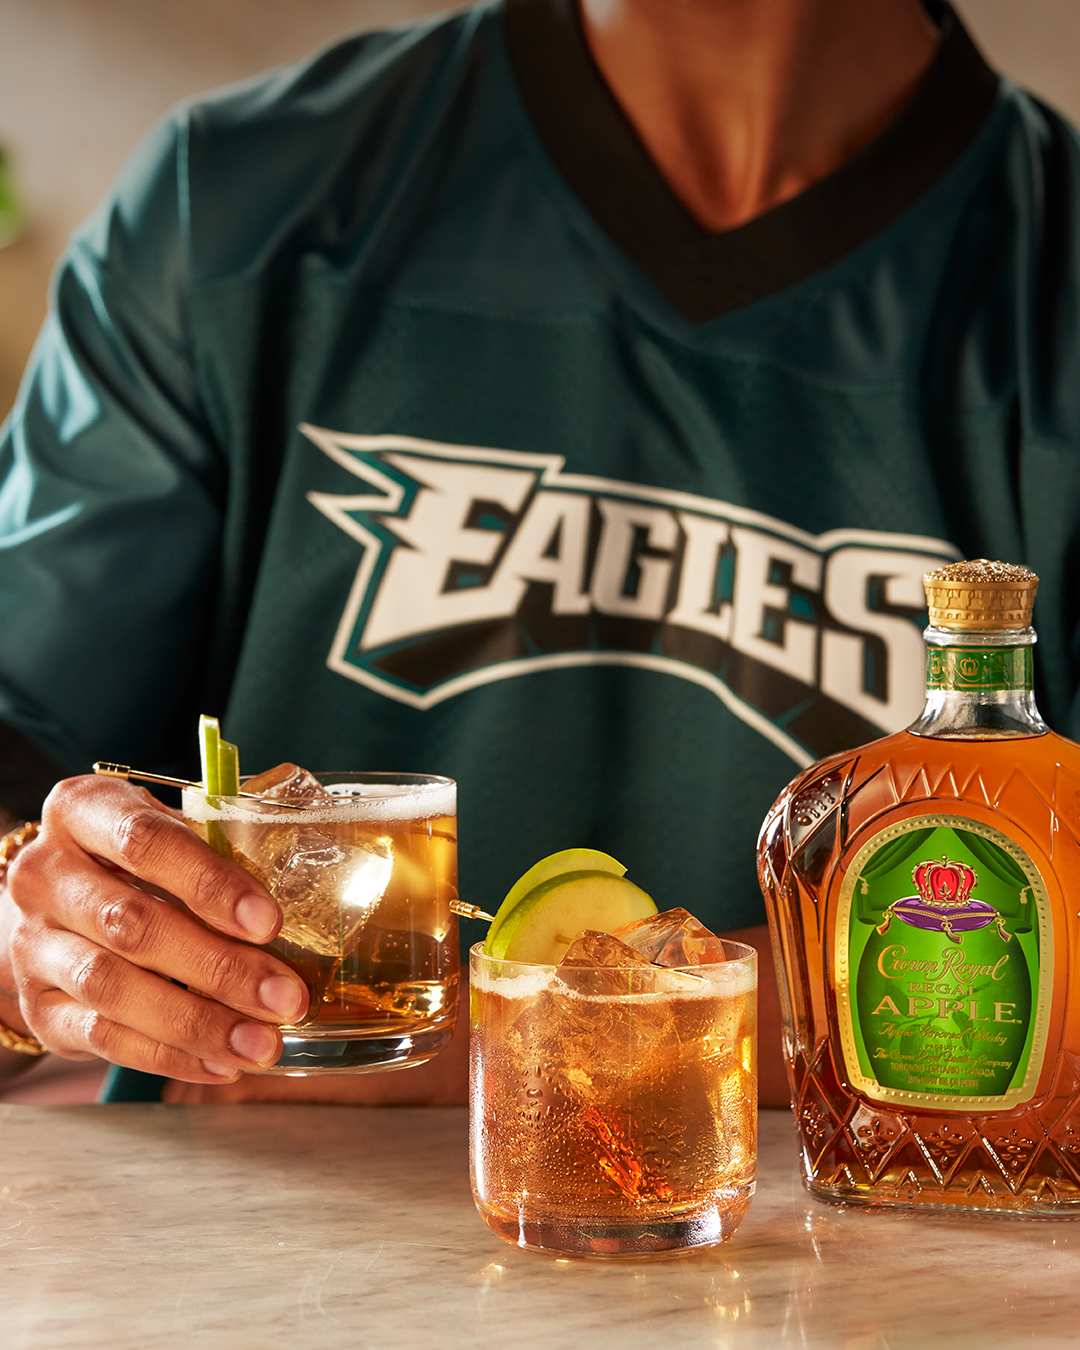 Philadelphia Eagles (Crown Royal Apple + Ginger) with a bottle of Crown Royal Regal Apple